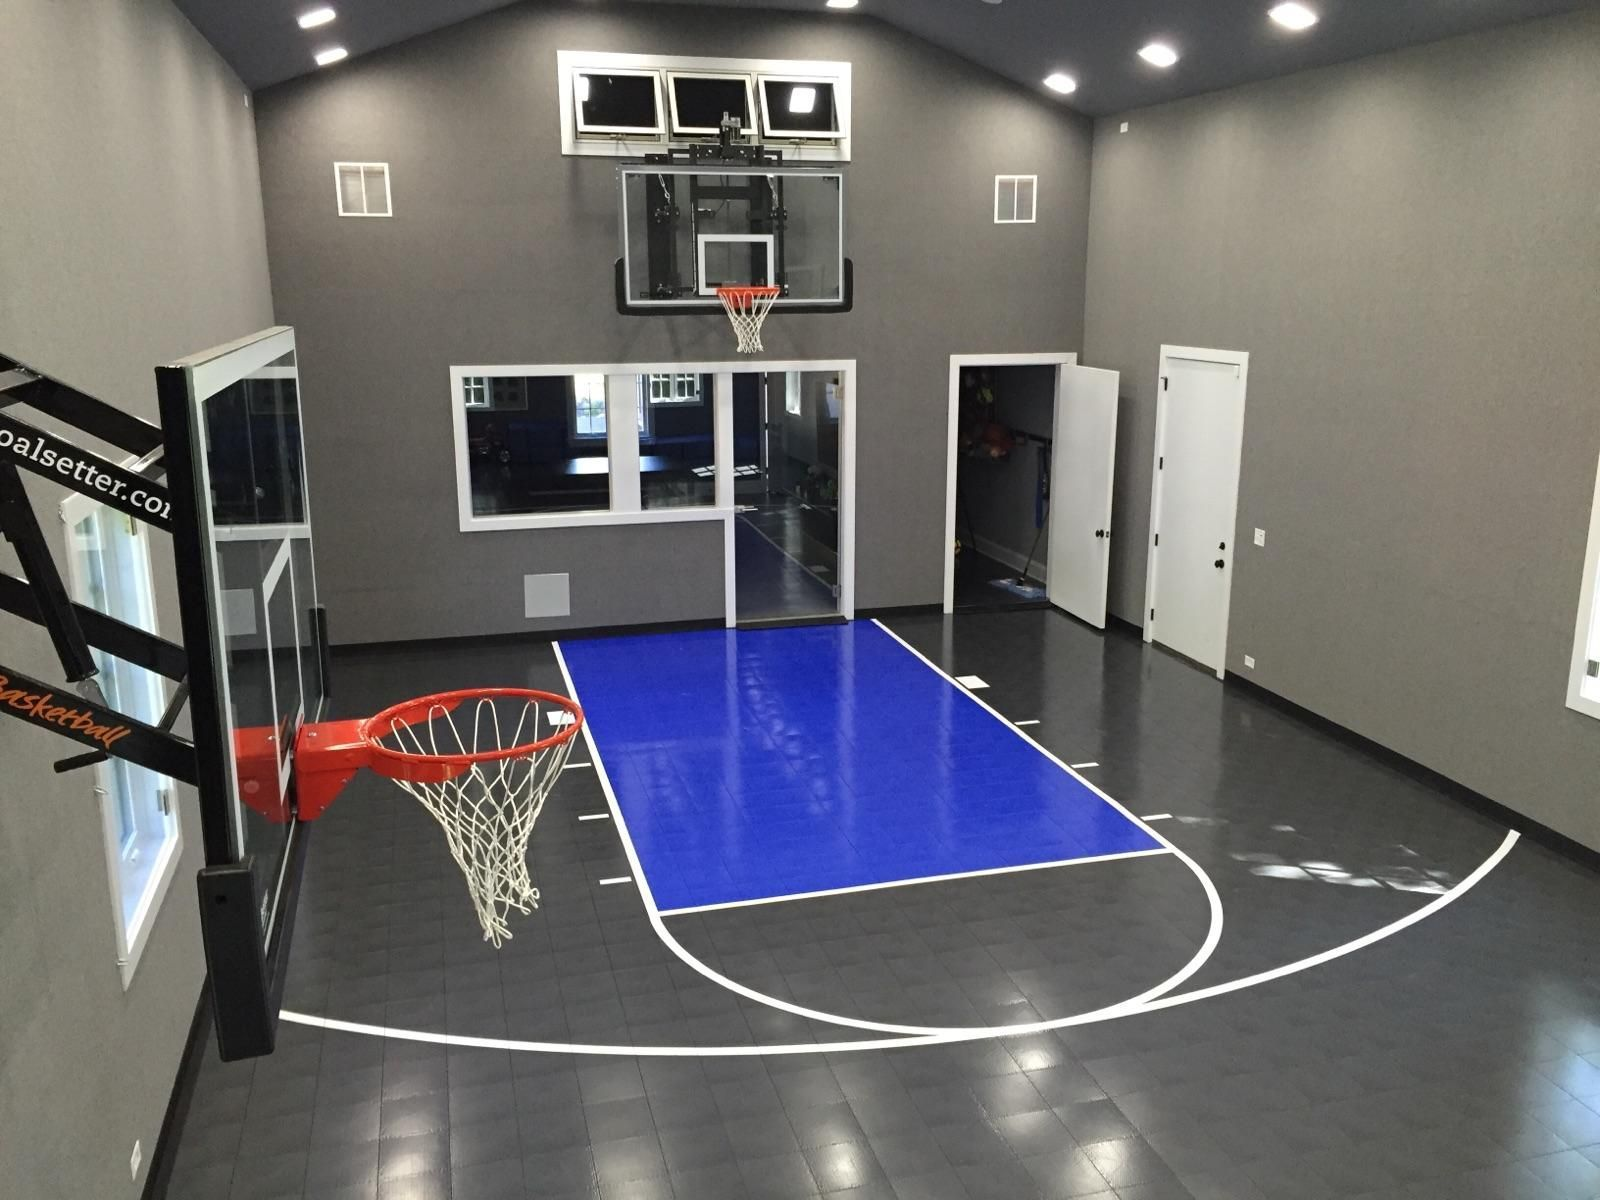 Basketballgiftideas Image Result For Rec Room Design With Basketball Court Indoorbasketball Home Basketball Court Basketball Room Indoor Basketball Court